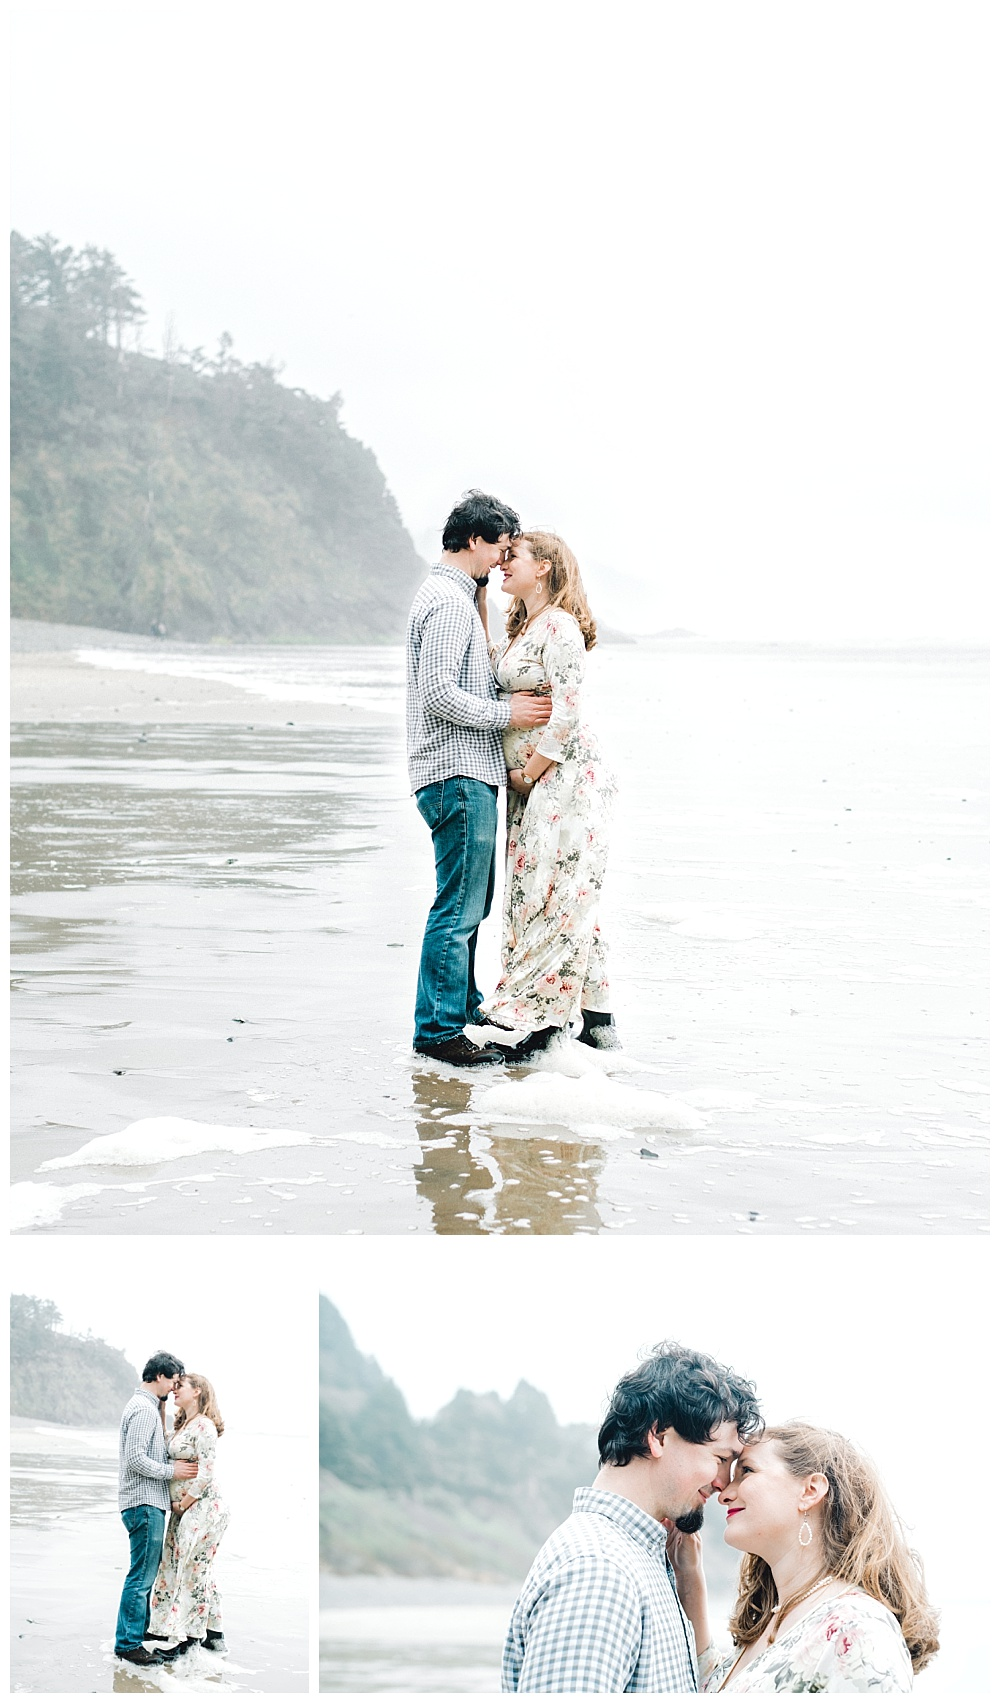 Maternity photo near Cannon Beach, OR - rain boots and floral dress on the coast